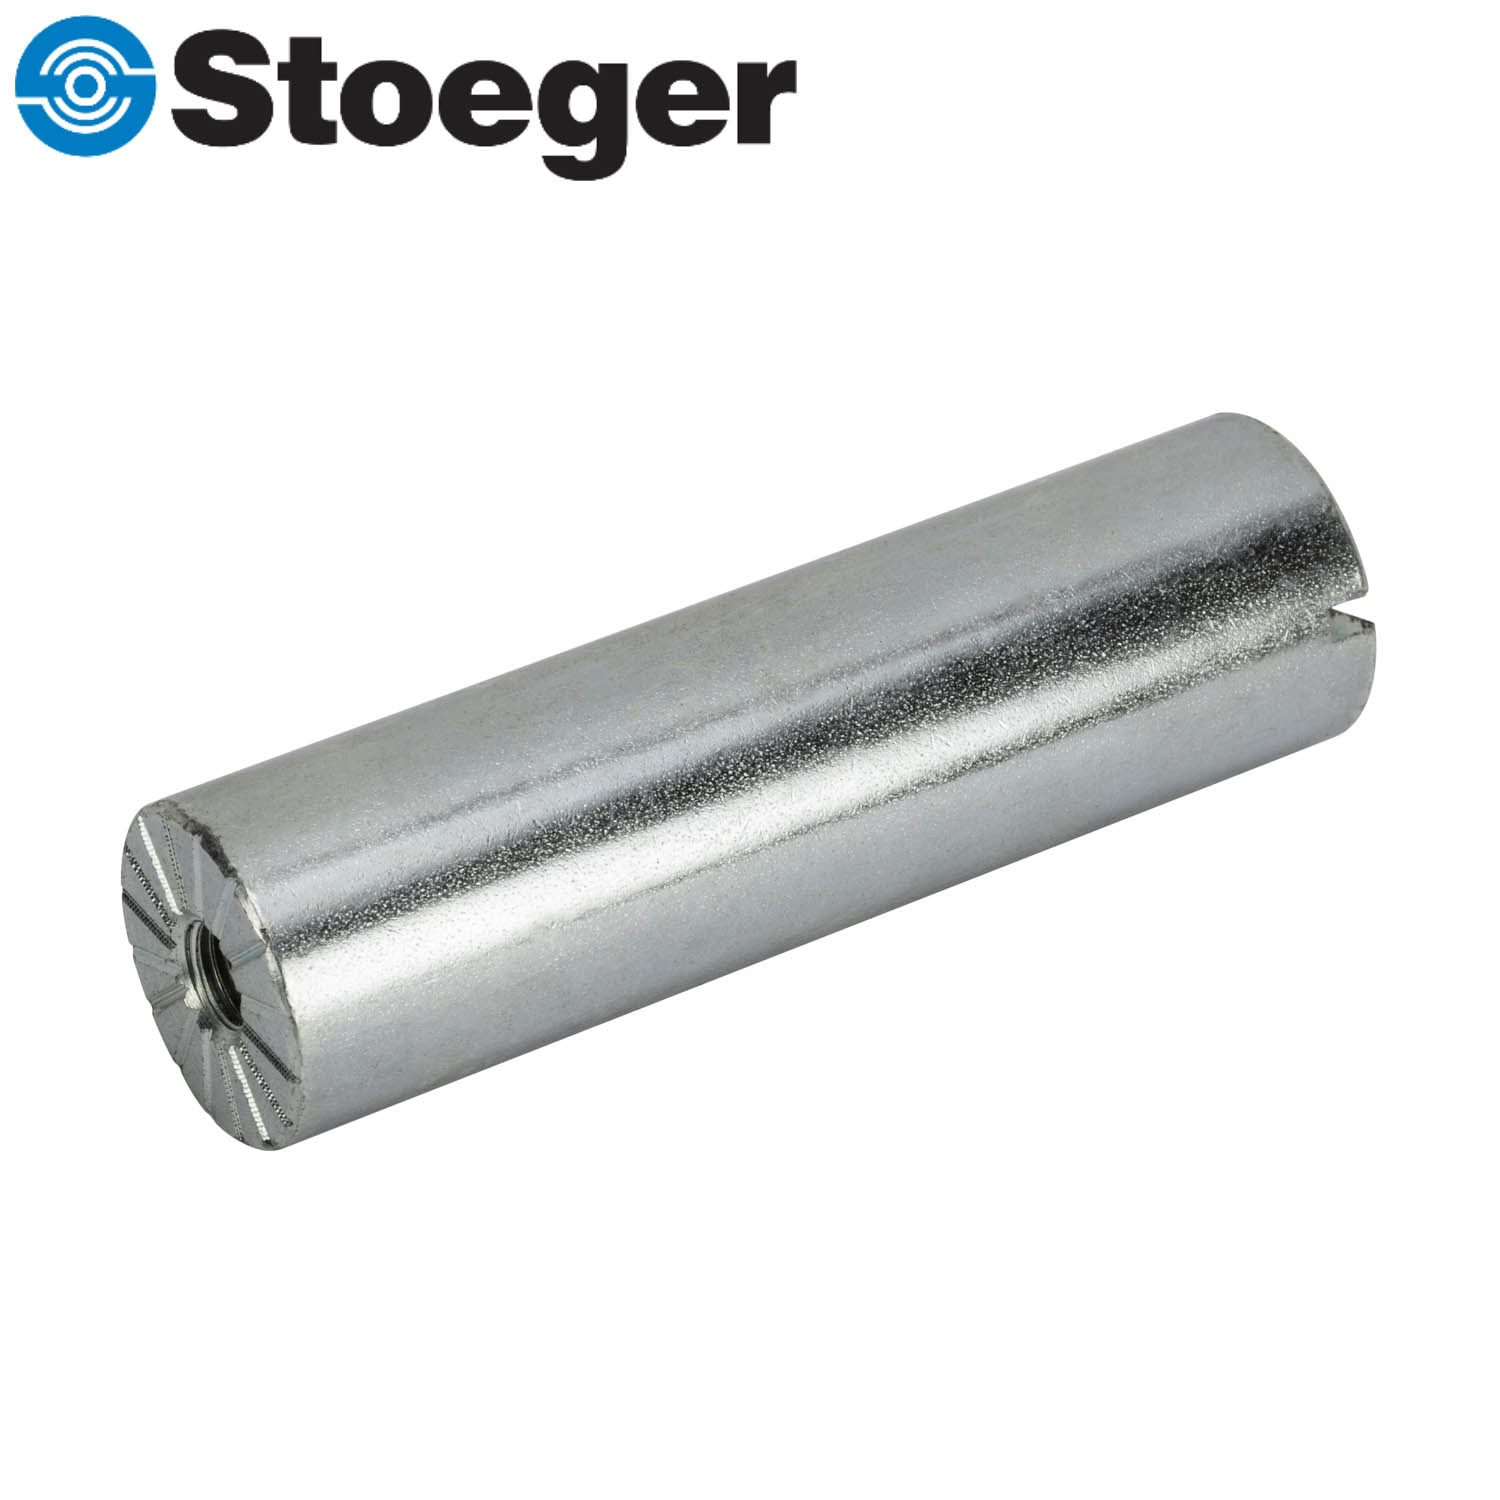 Stoeger M3000/M3500 Recoil Reducer: Midwest Gun Works